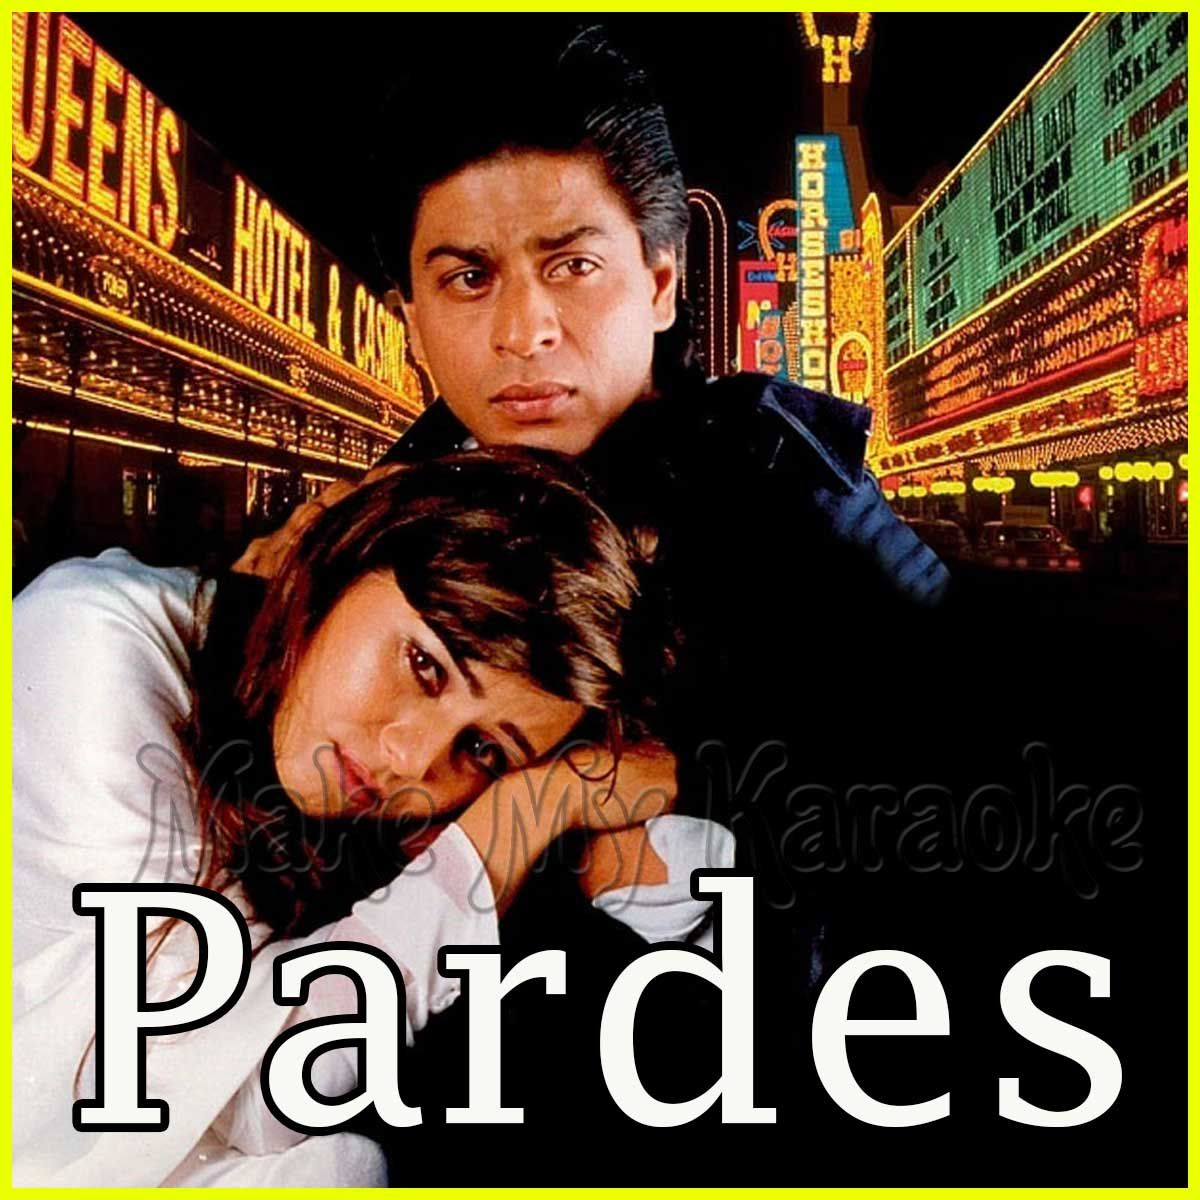 Kisi Roz Tumse Mulakat Pardes Mp3 And Video Karaoke Format Indian Movies Bollywood Bollywood Movies Bollywood Posters